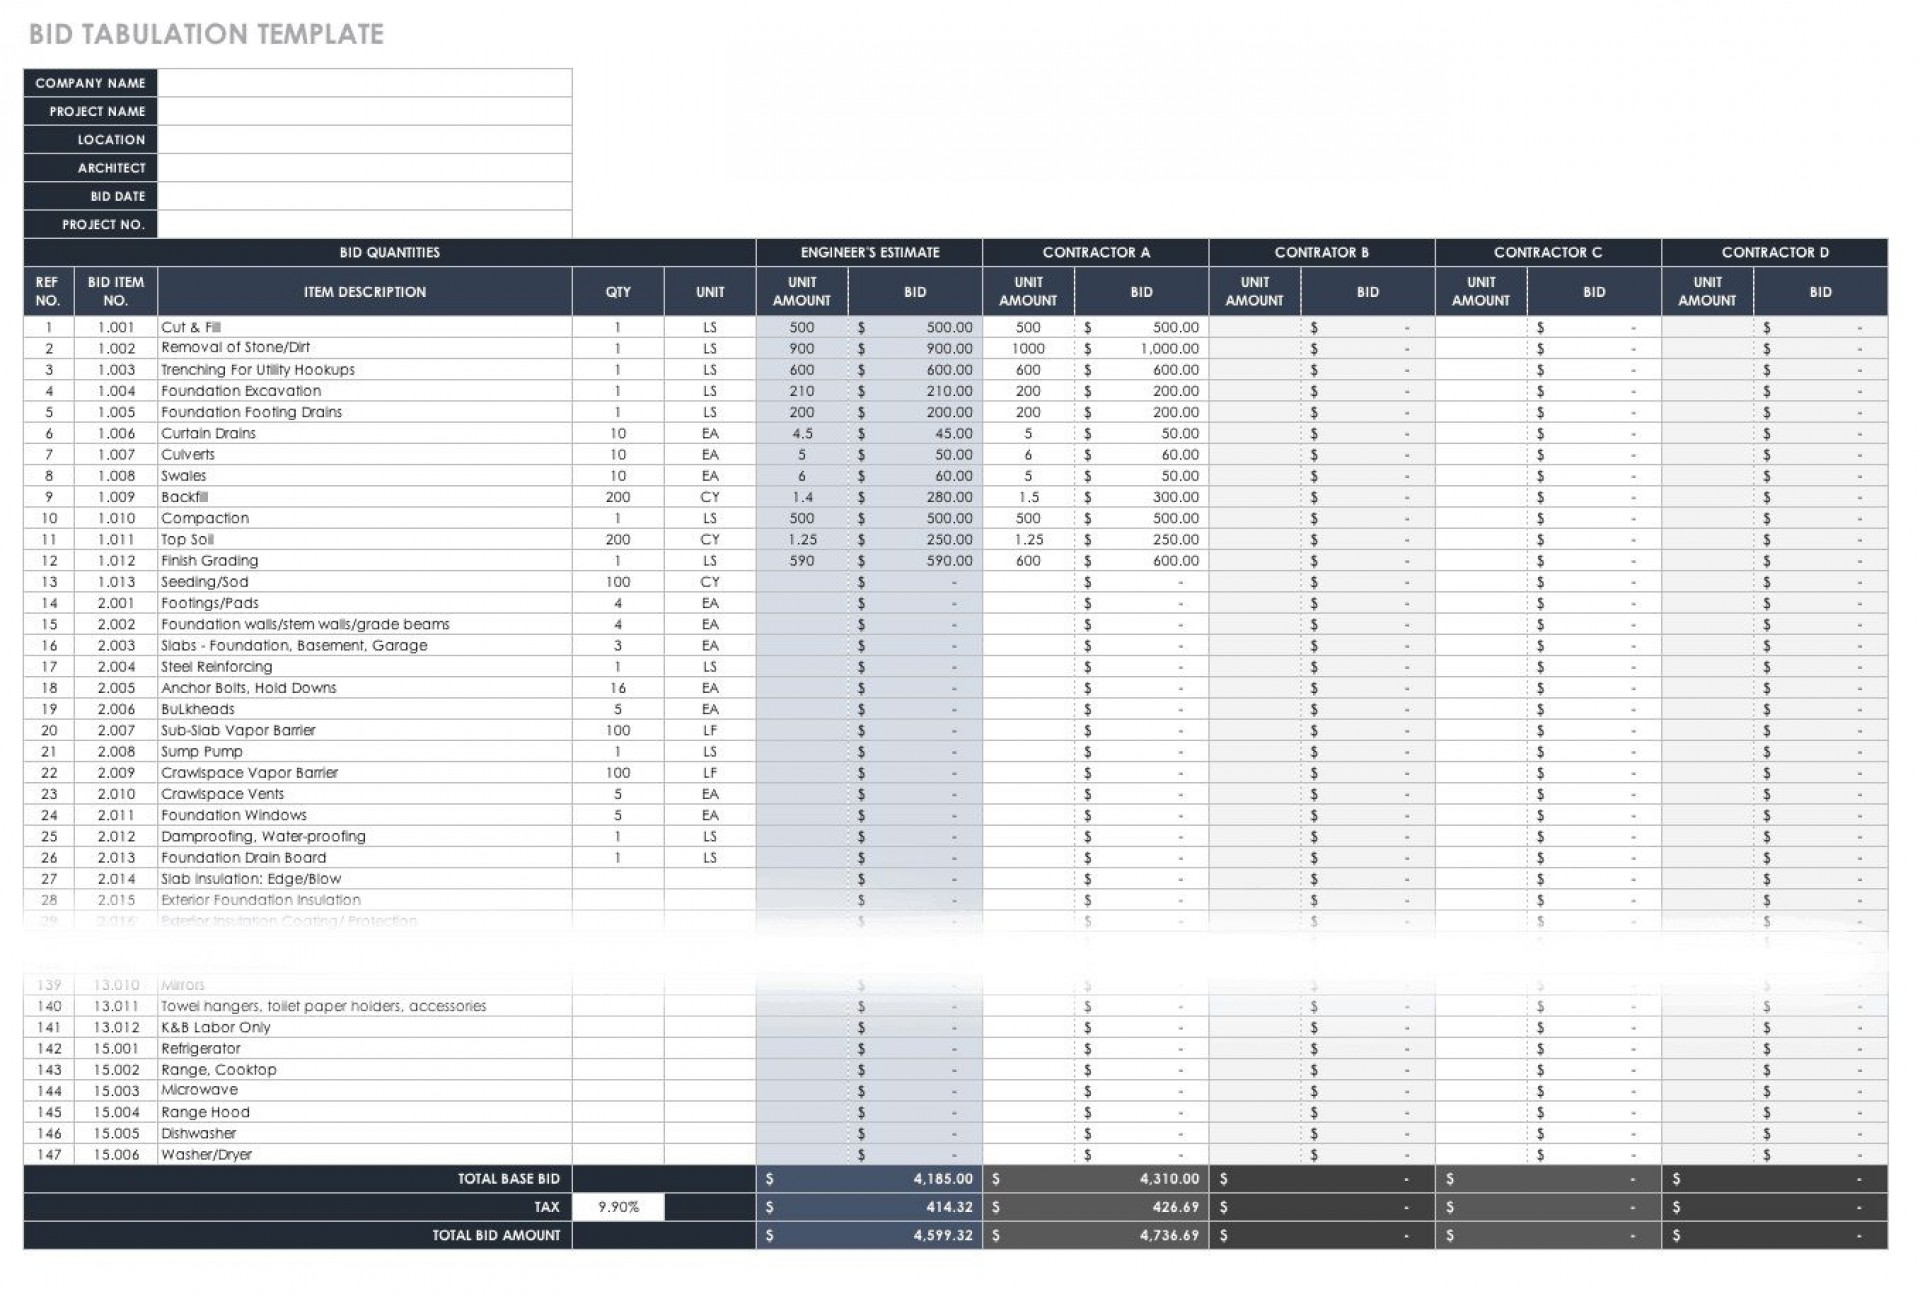 006 Best Construction Bid Template Free Excel High Def 1920